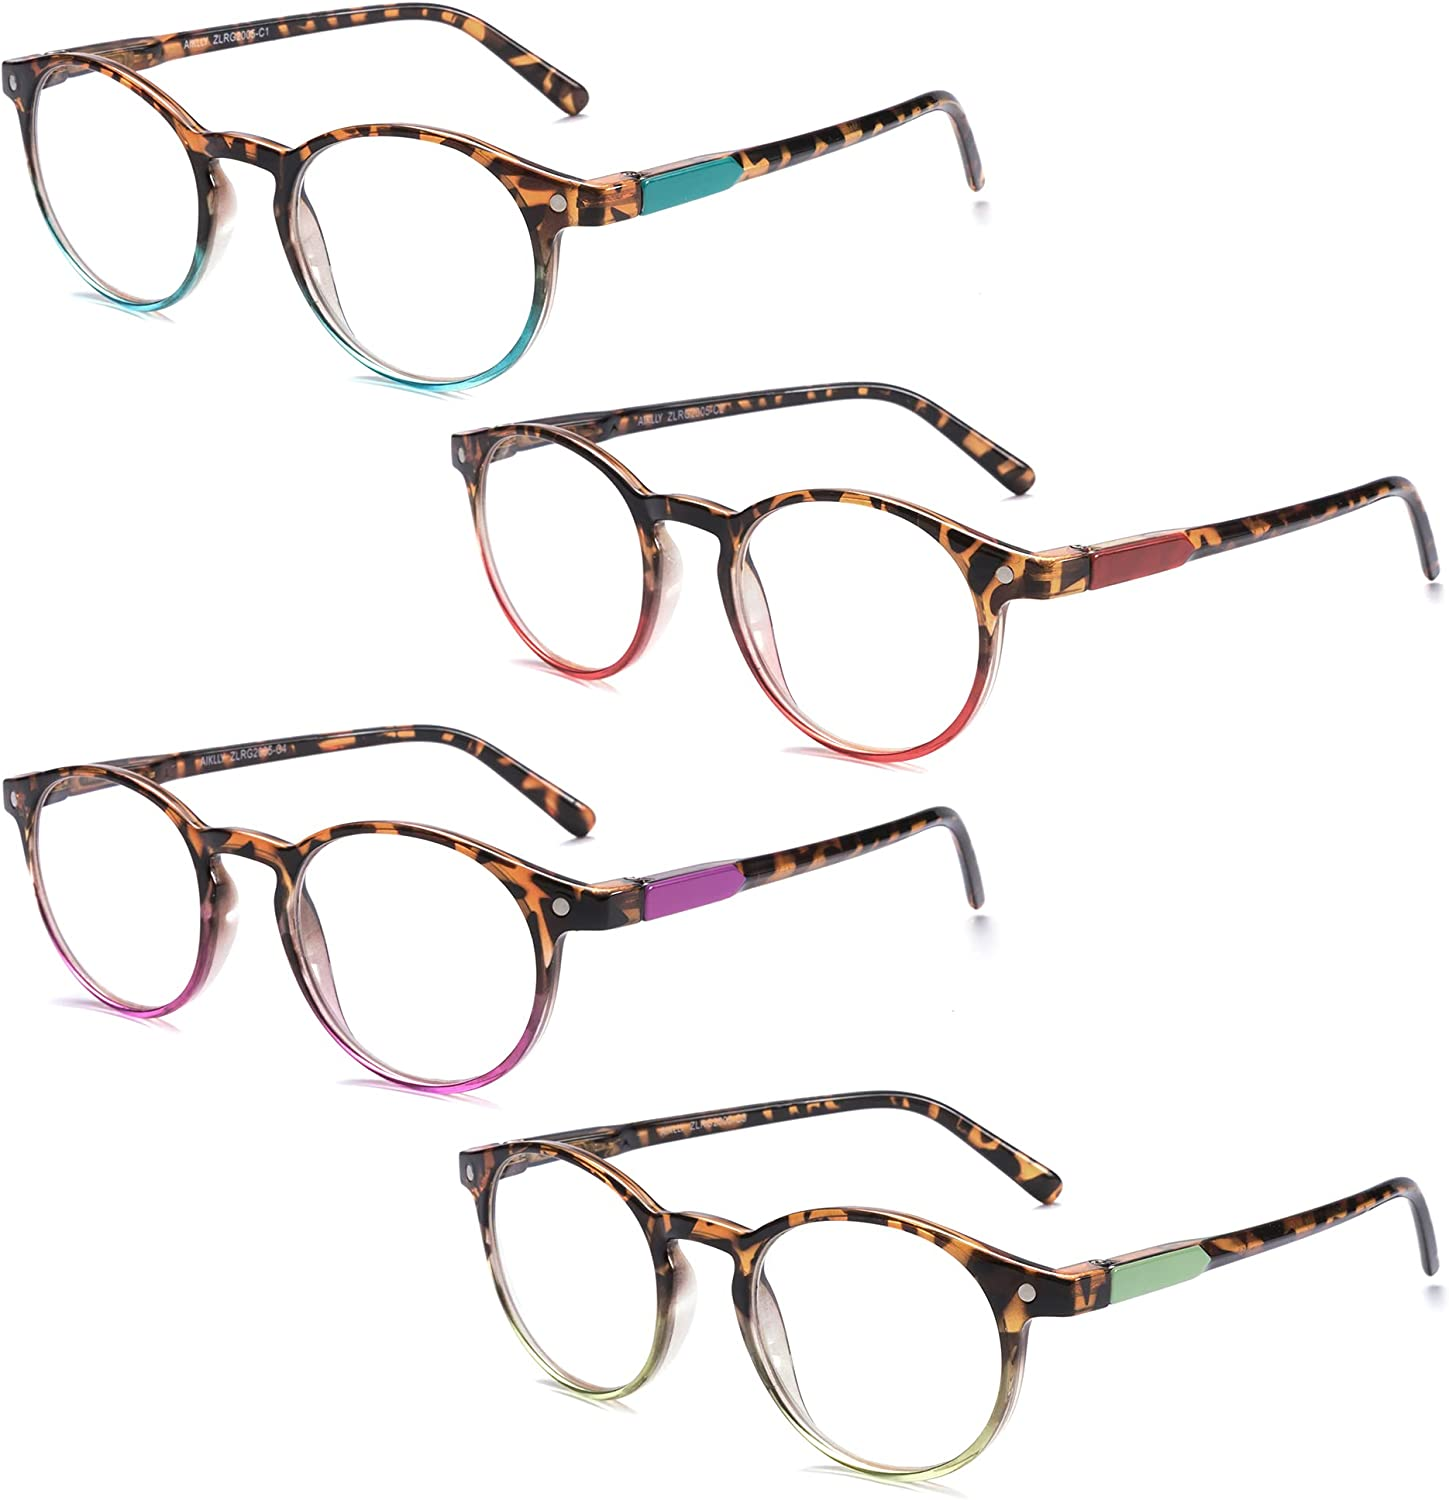 Trendy Reading Glasses for Women Limited price sale Max 46% OFF Readers Light Ladies Roun with